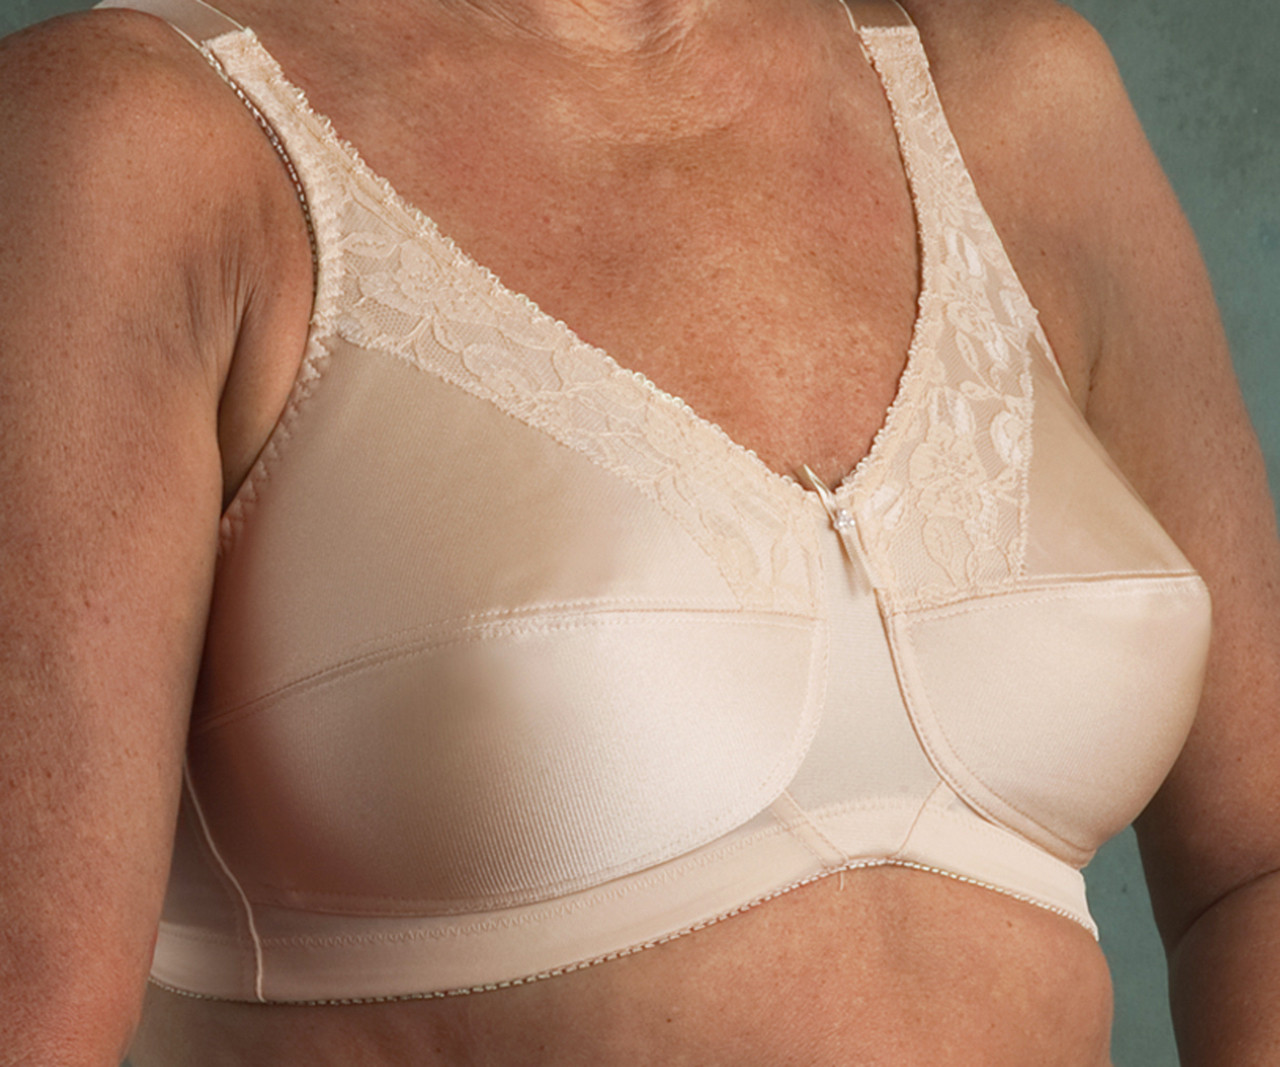 cba3eaf6a96bb Nearly Me 600 Lace Bandeau Mastectomy Bra - MastectomyShop.com